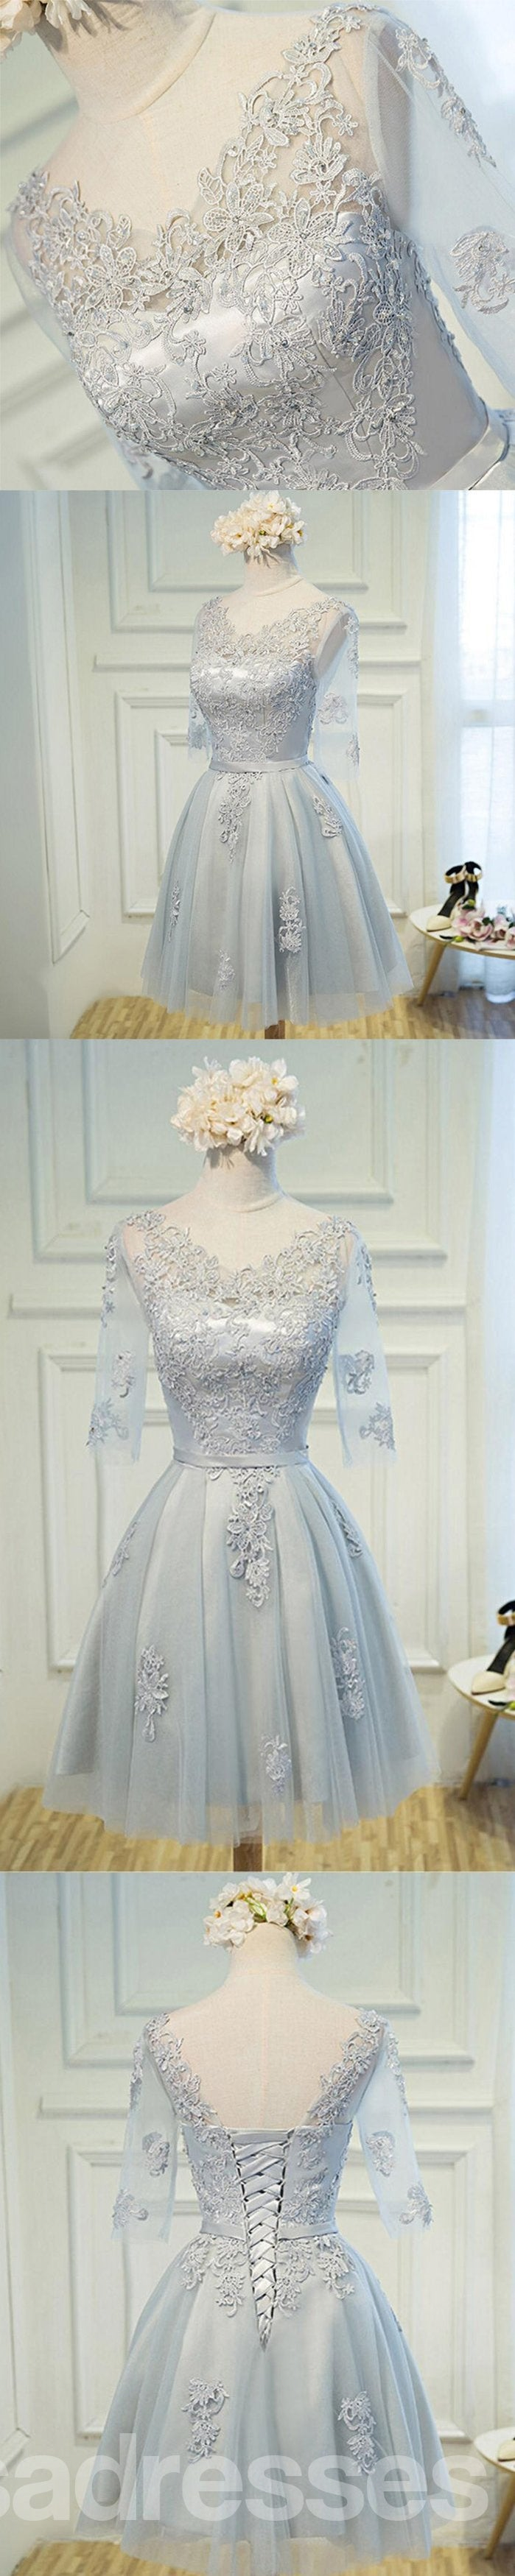 Long Sleeve V Neckline Gray Lace Tulle Short Homecoming Prom Dresses, Affordable Short Party Prom Sweet 16 Dresses, Perfect Homecoming Cocktail Dresses, CM366